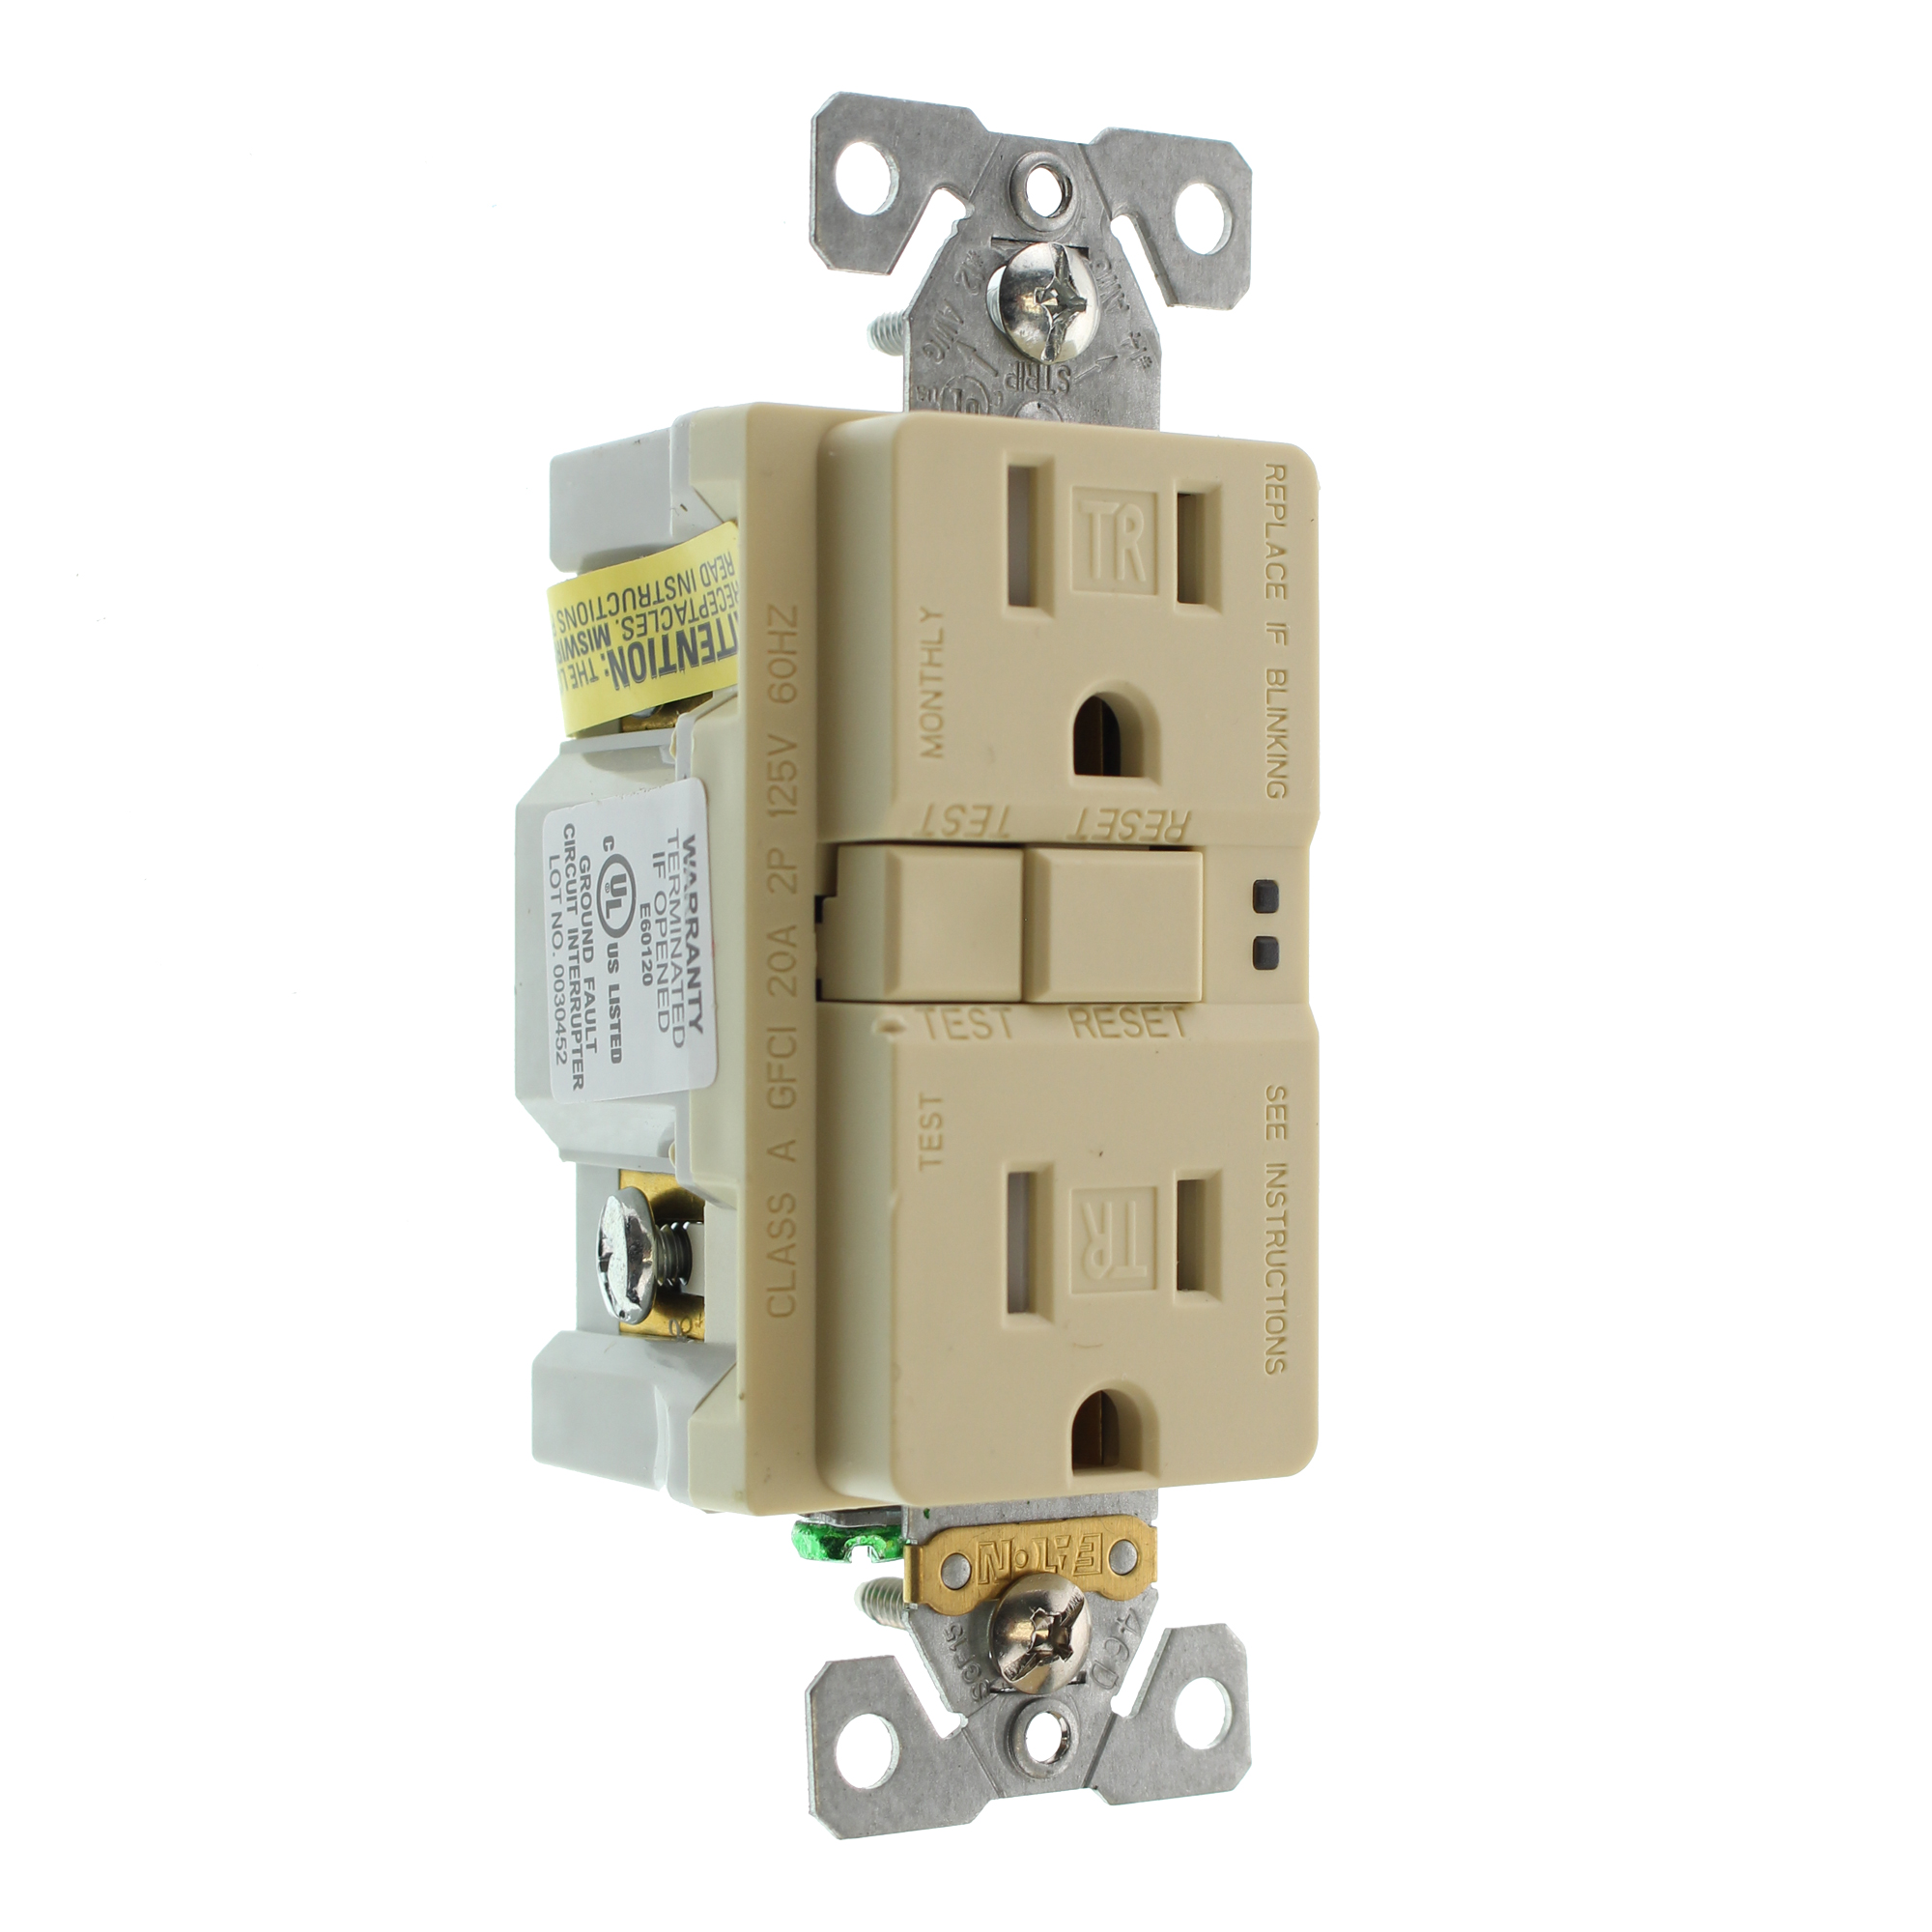 Hubbell Gftrst15i3z Tamper Gfci Receptacle Tr 15a 125v Ivory Ground Fault Circuit Interrupter Safety Outlet This Type Of We Gladly Accept Payments By Paypal Visa Mastercard Discover American Express